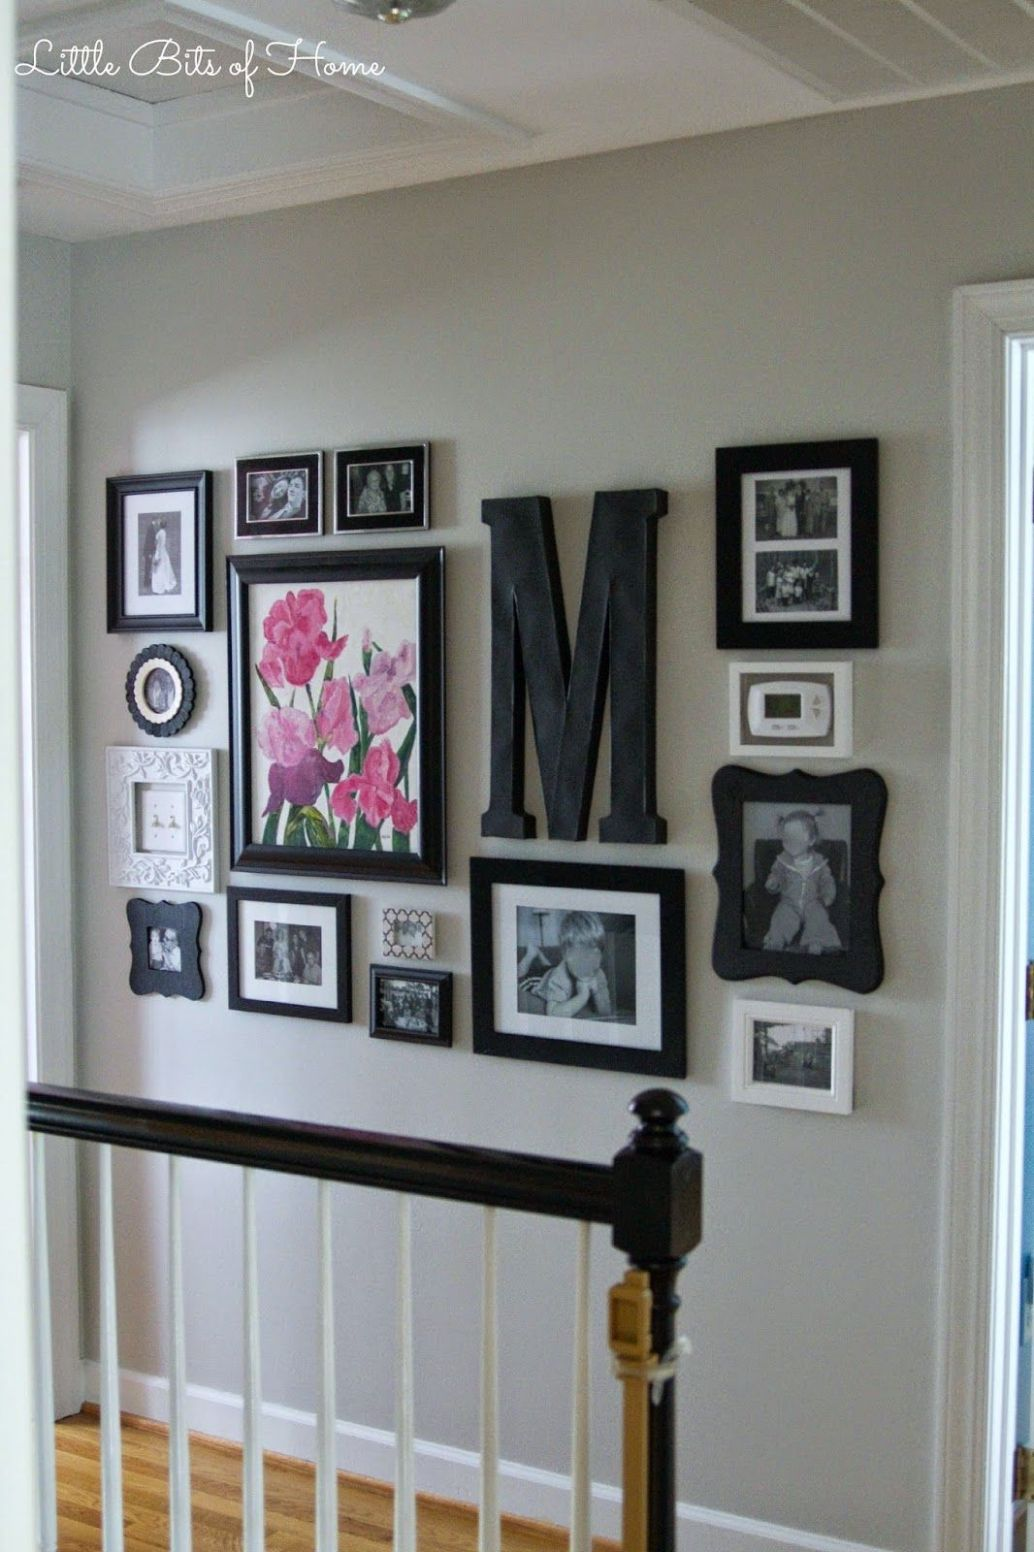 Hallway Gallery Wall | Home decor, Home, Decor - wall decor ideas picture frame